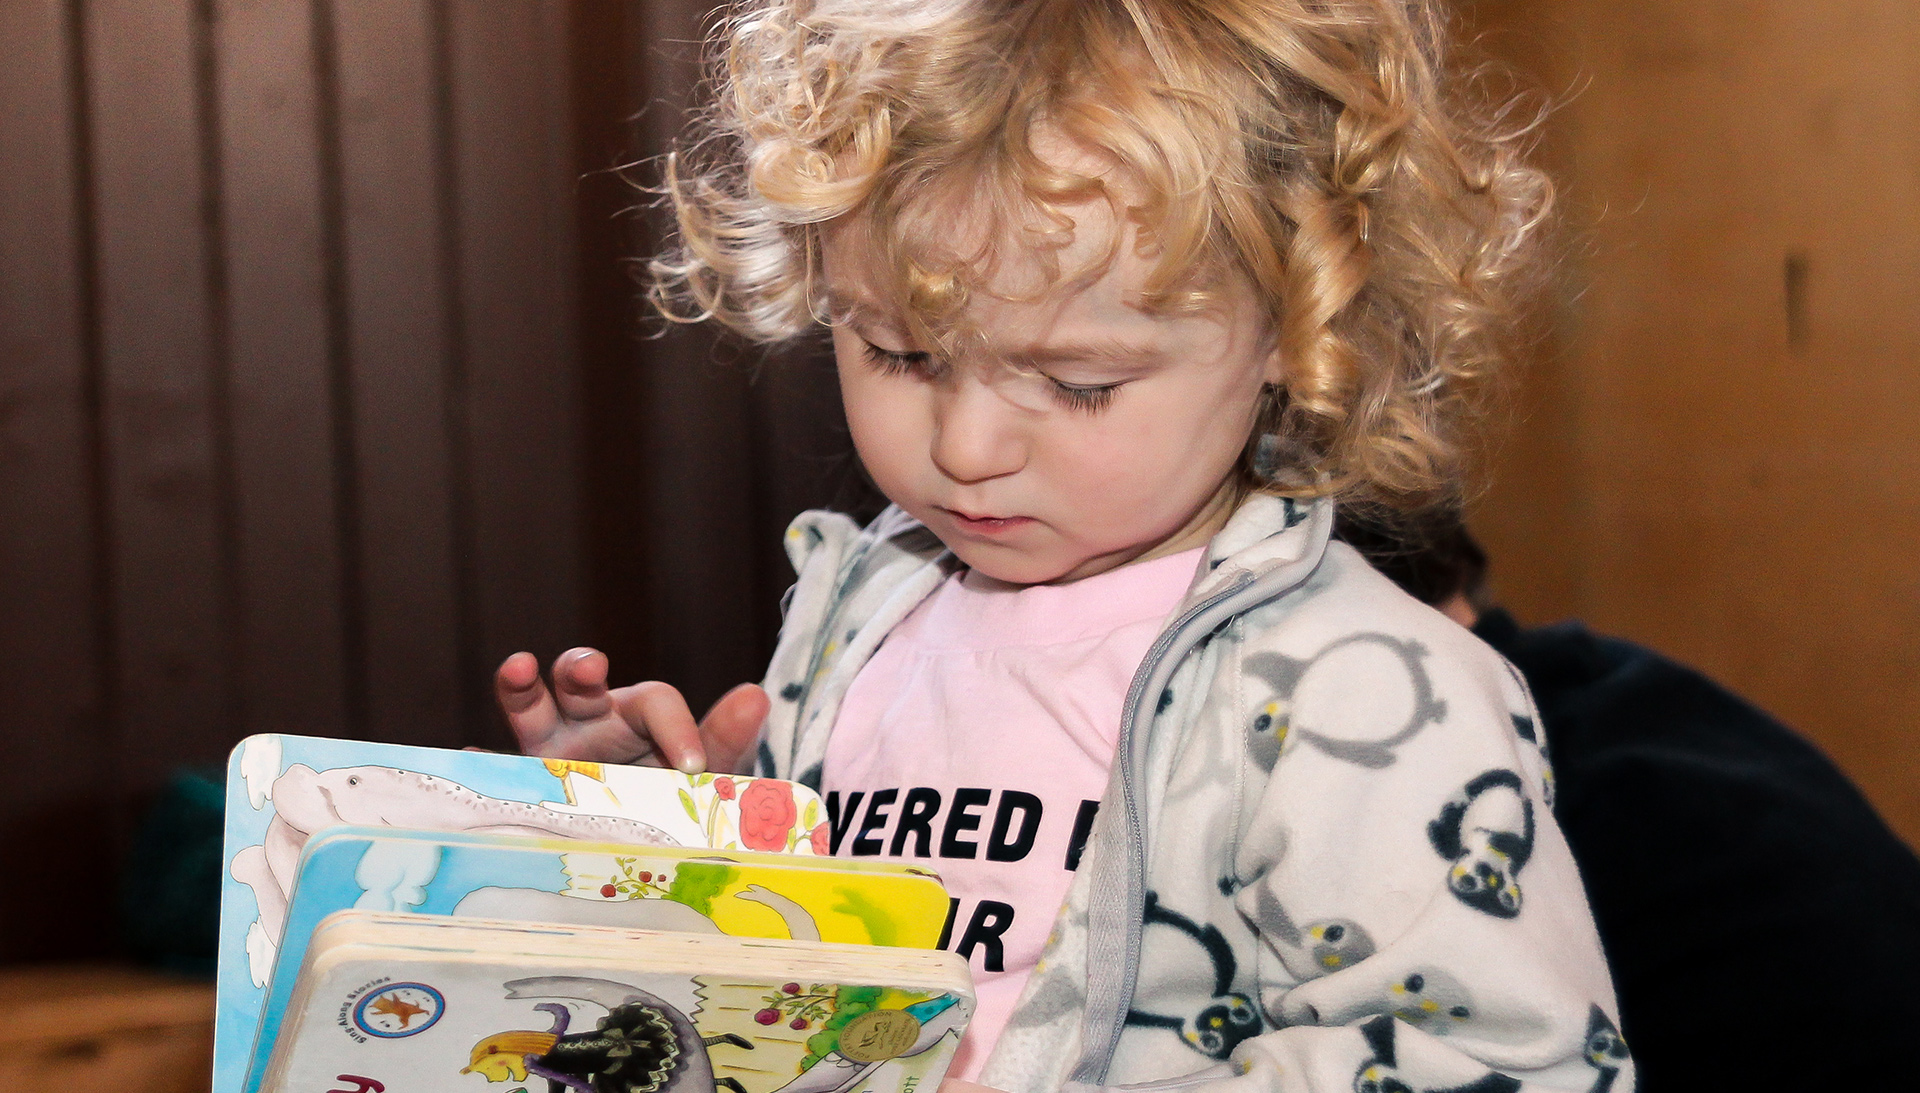 Child with curly blond hair looking at a book